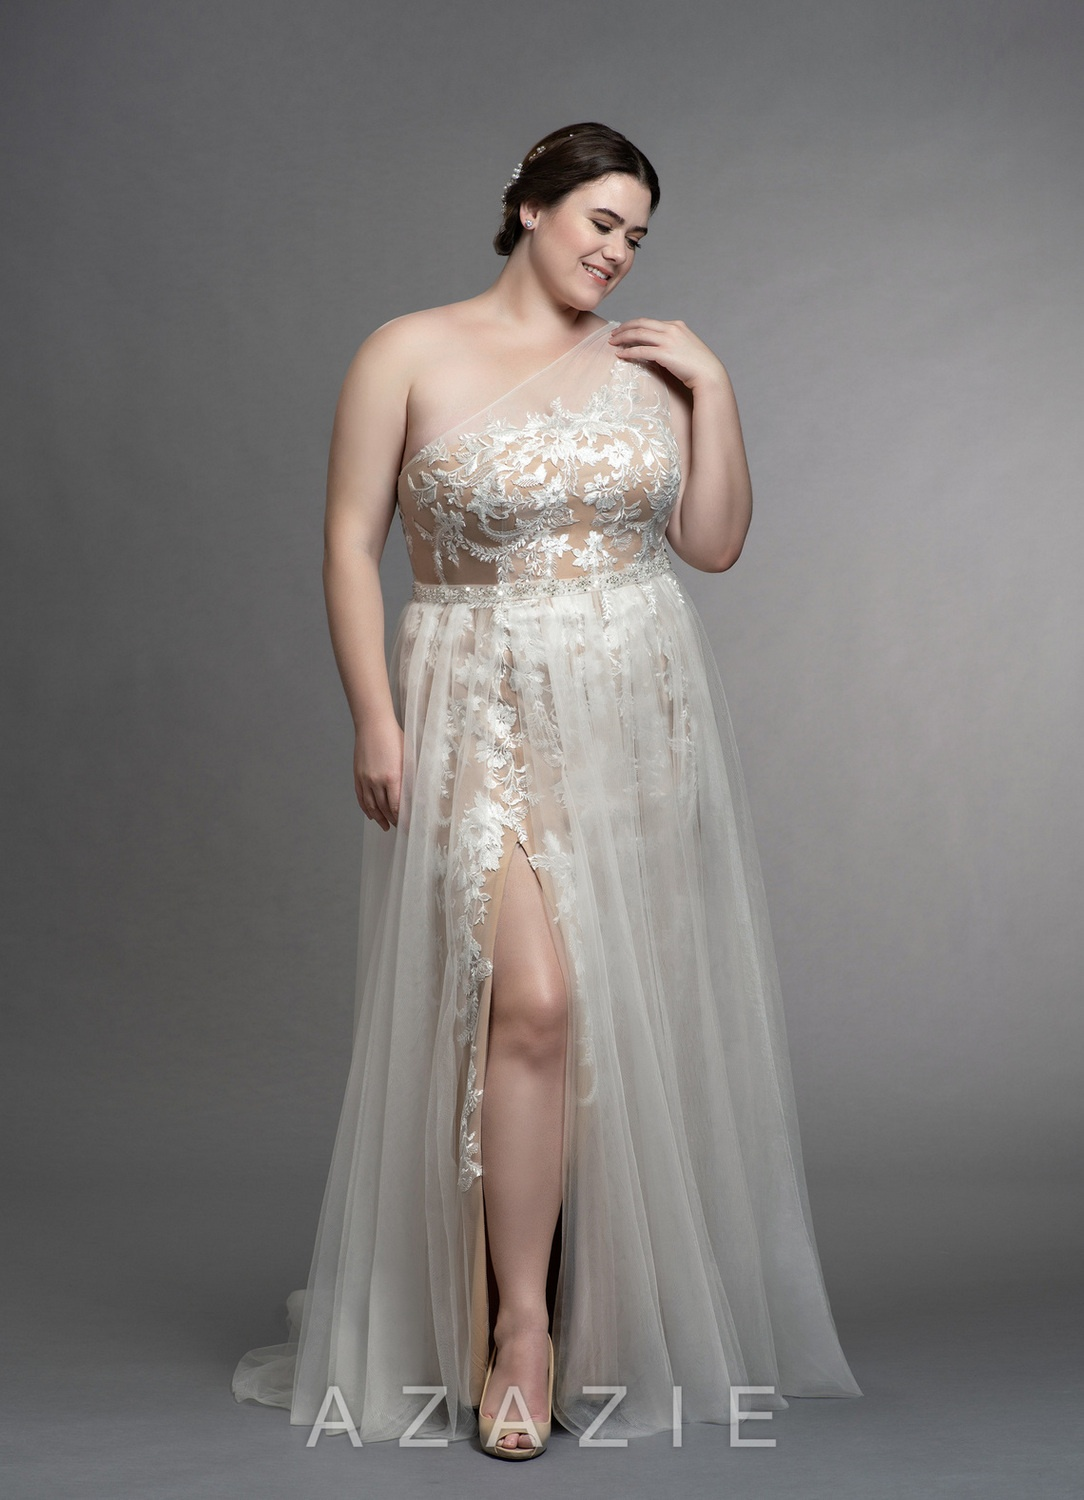 Elodie Plus Size Wedding Gown at Azazie